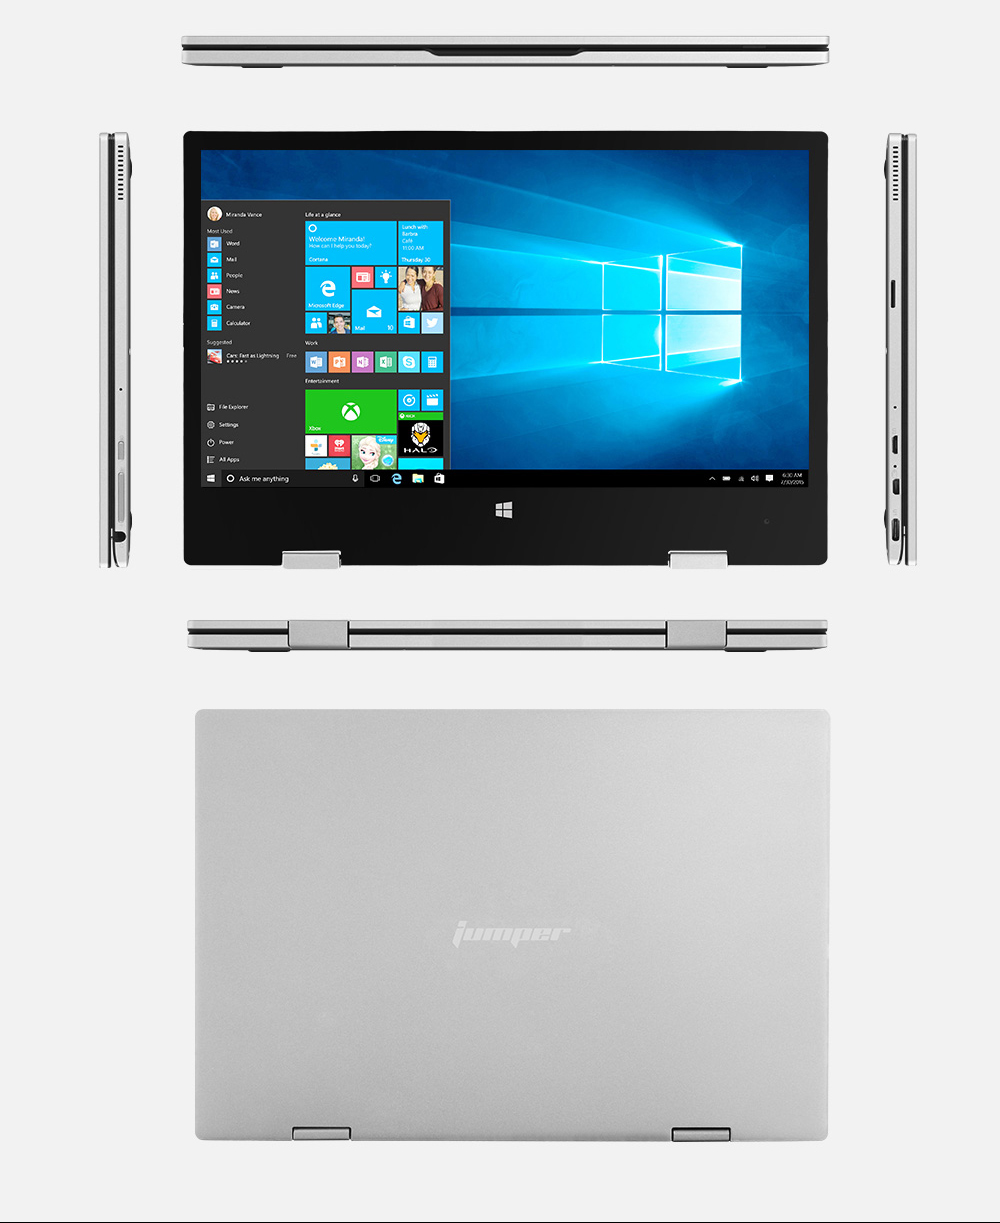 Jumper EZbook X1 11.6 FHD IPS Touchscreen laptop (12)